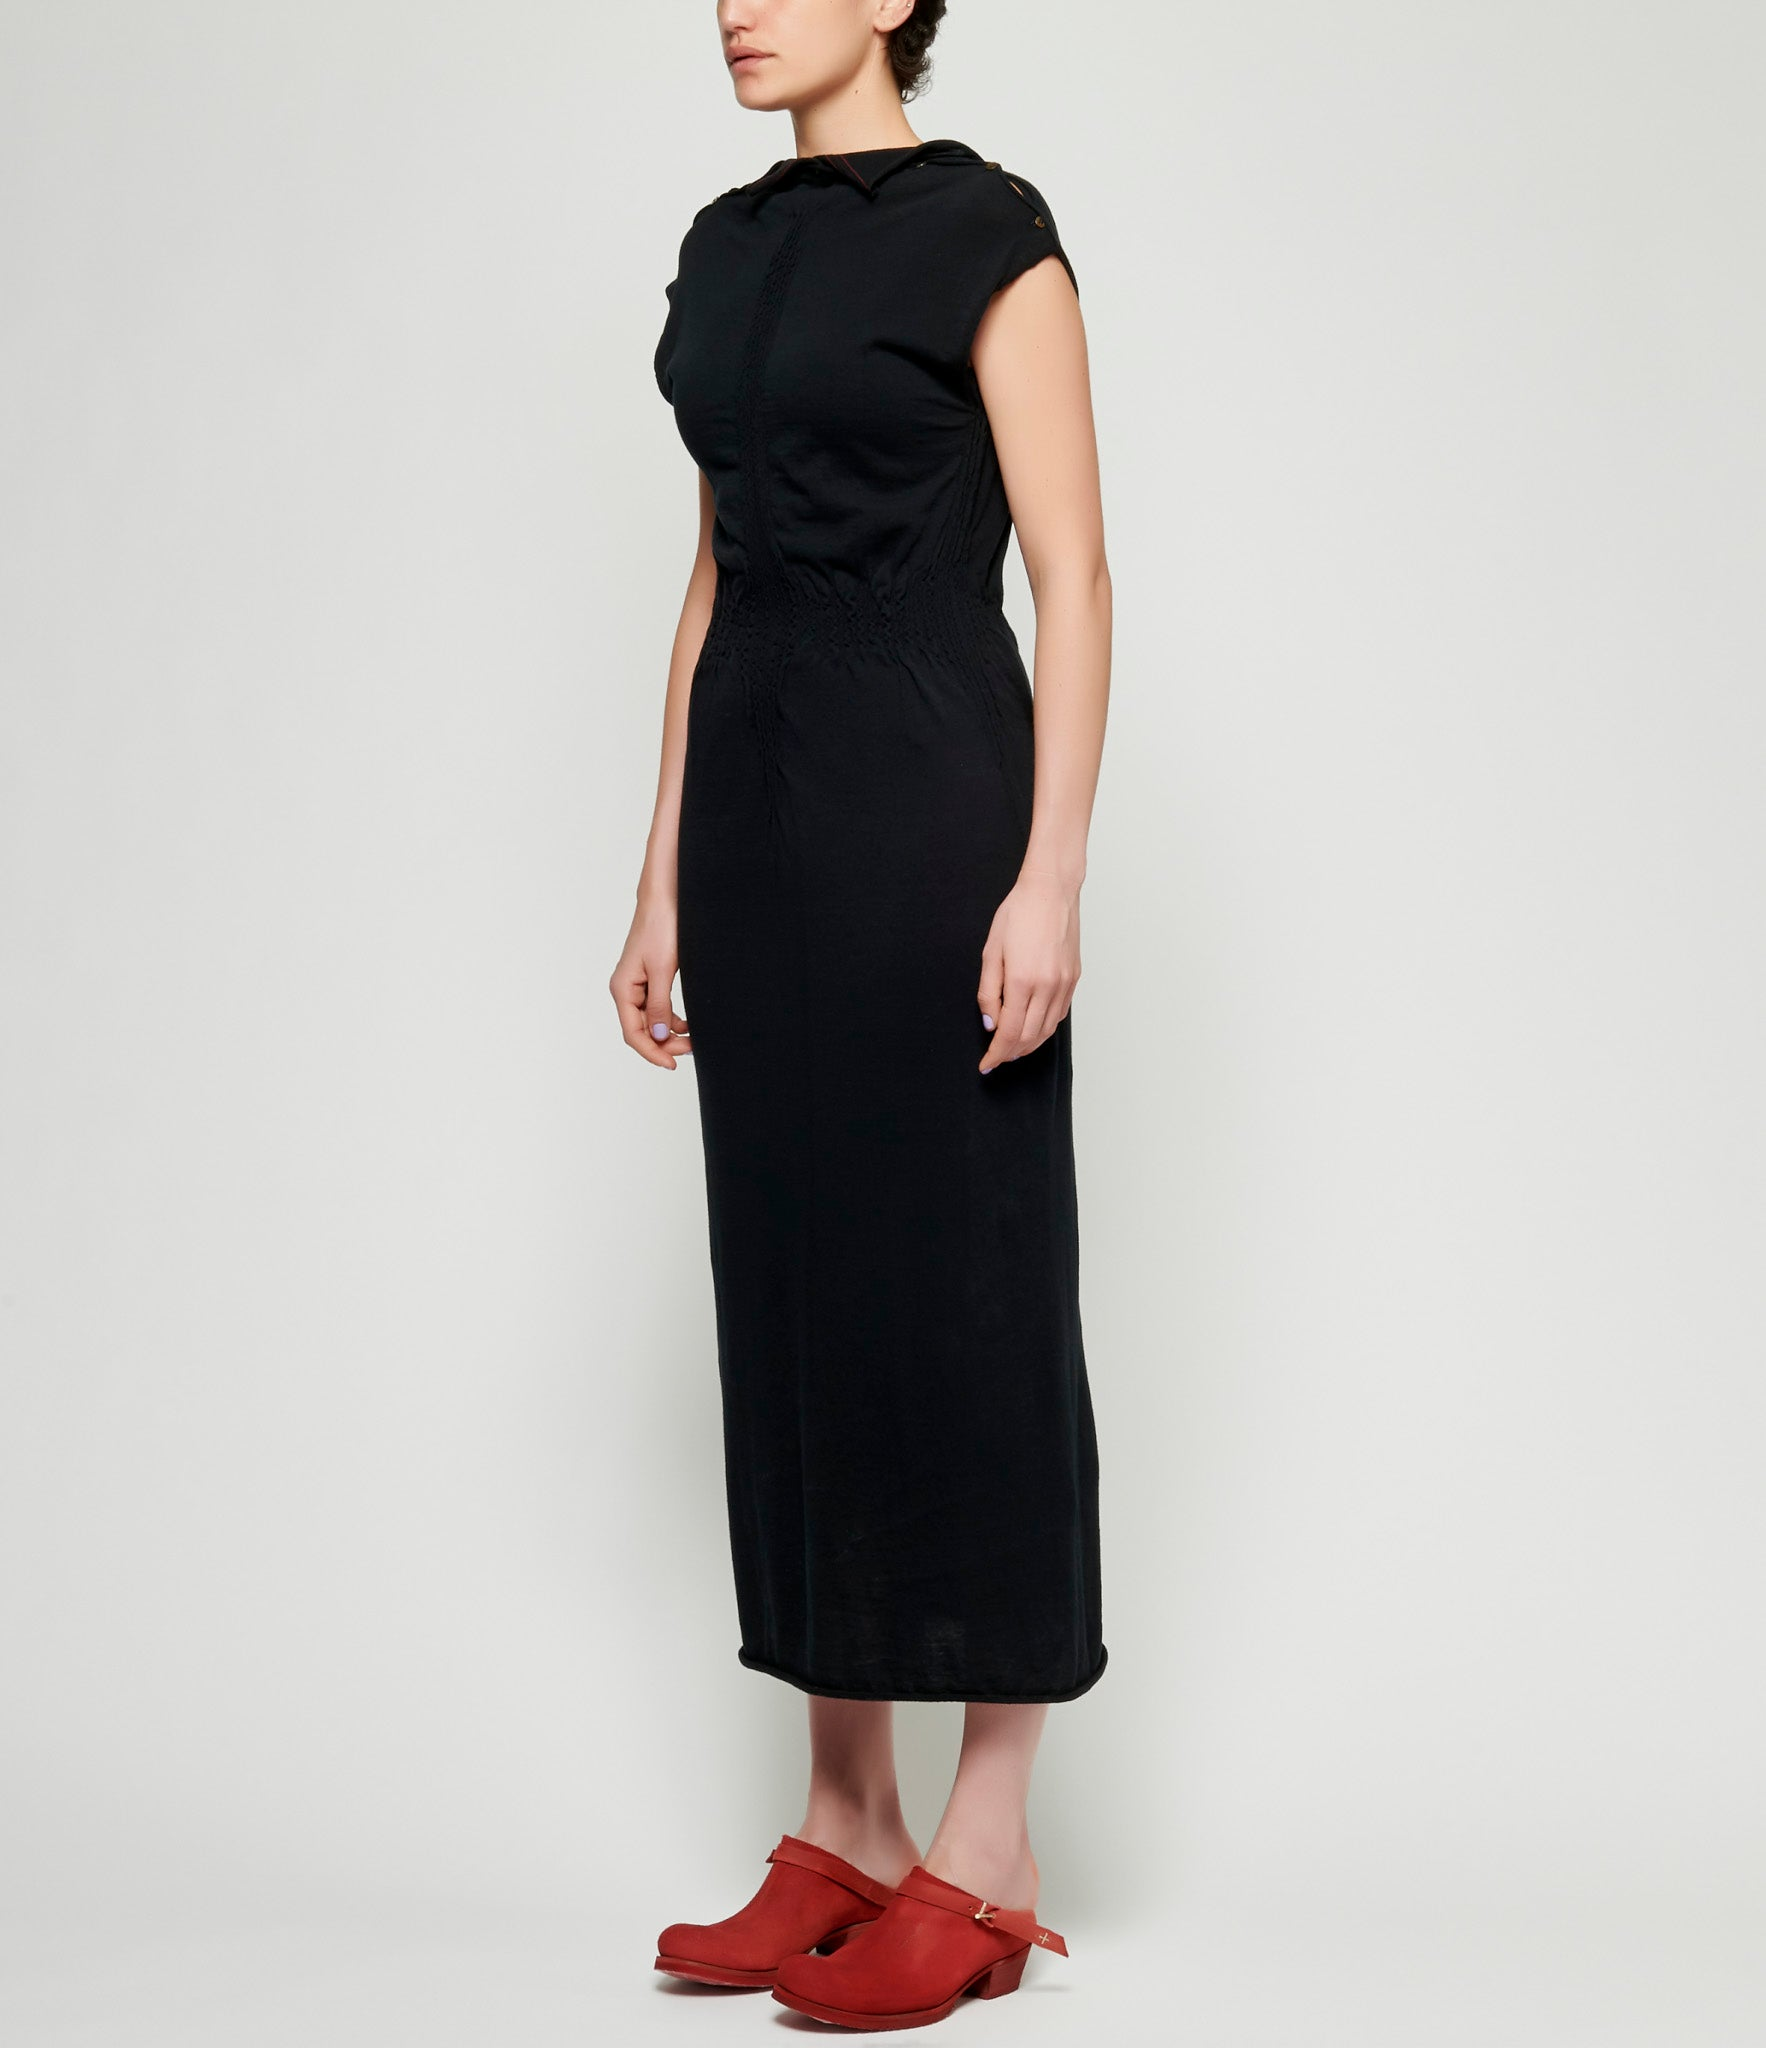 m.a+ Knit Crunched Tight Long Dress